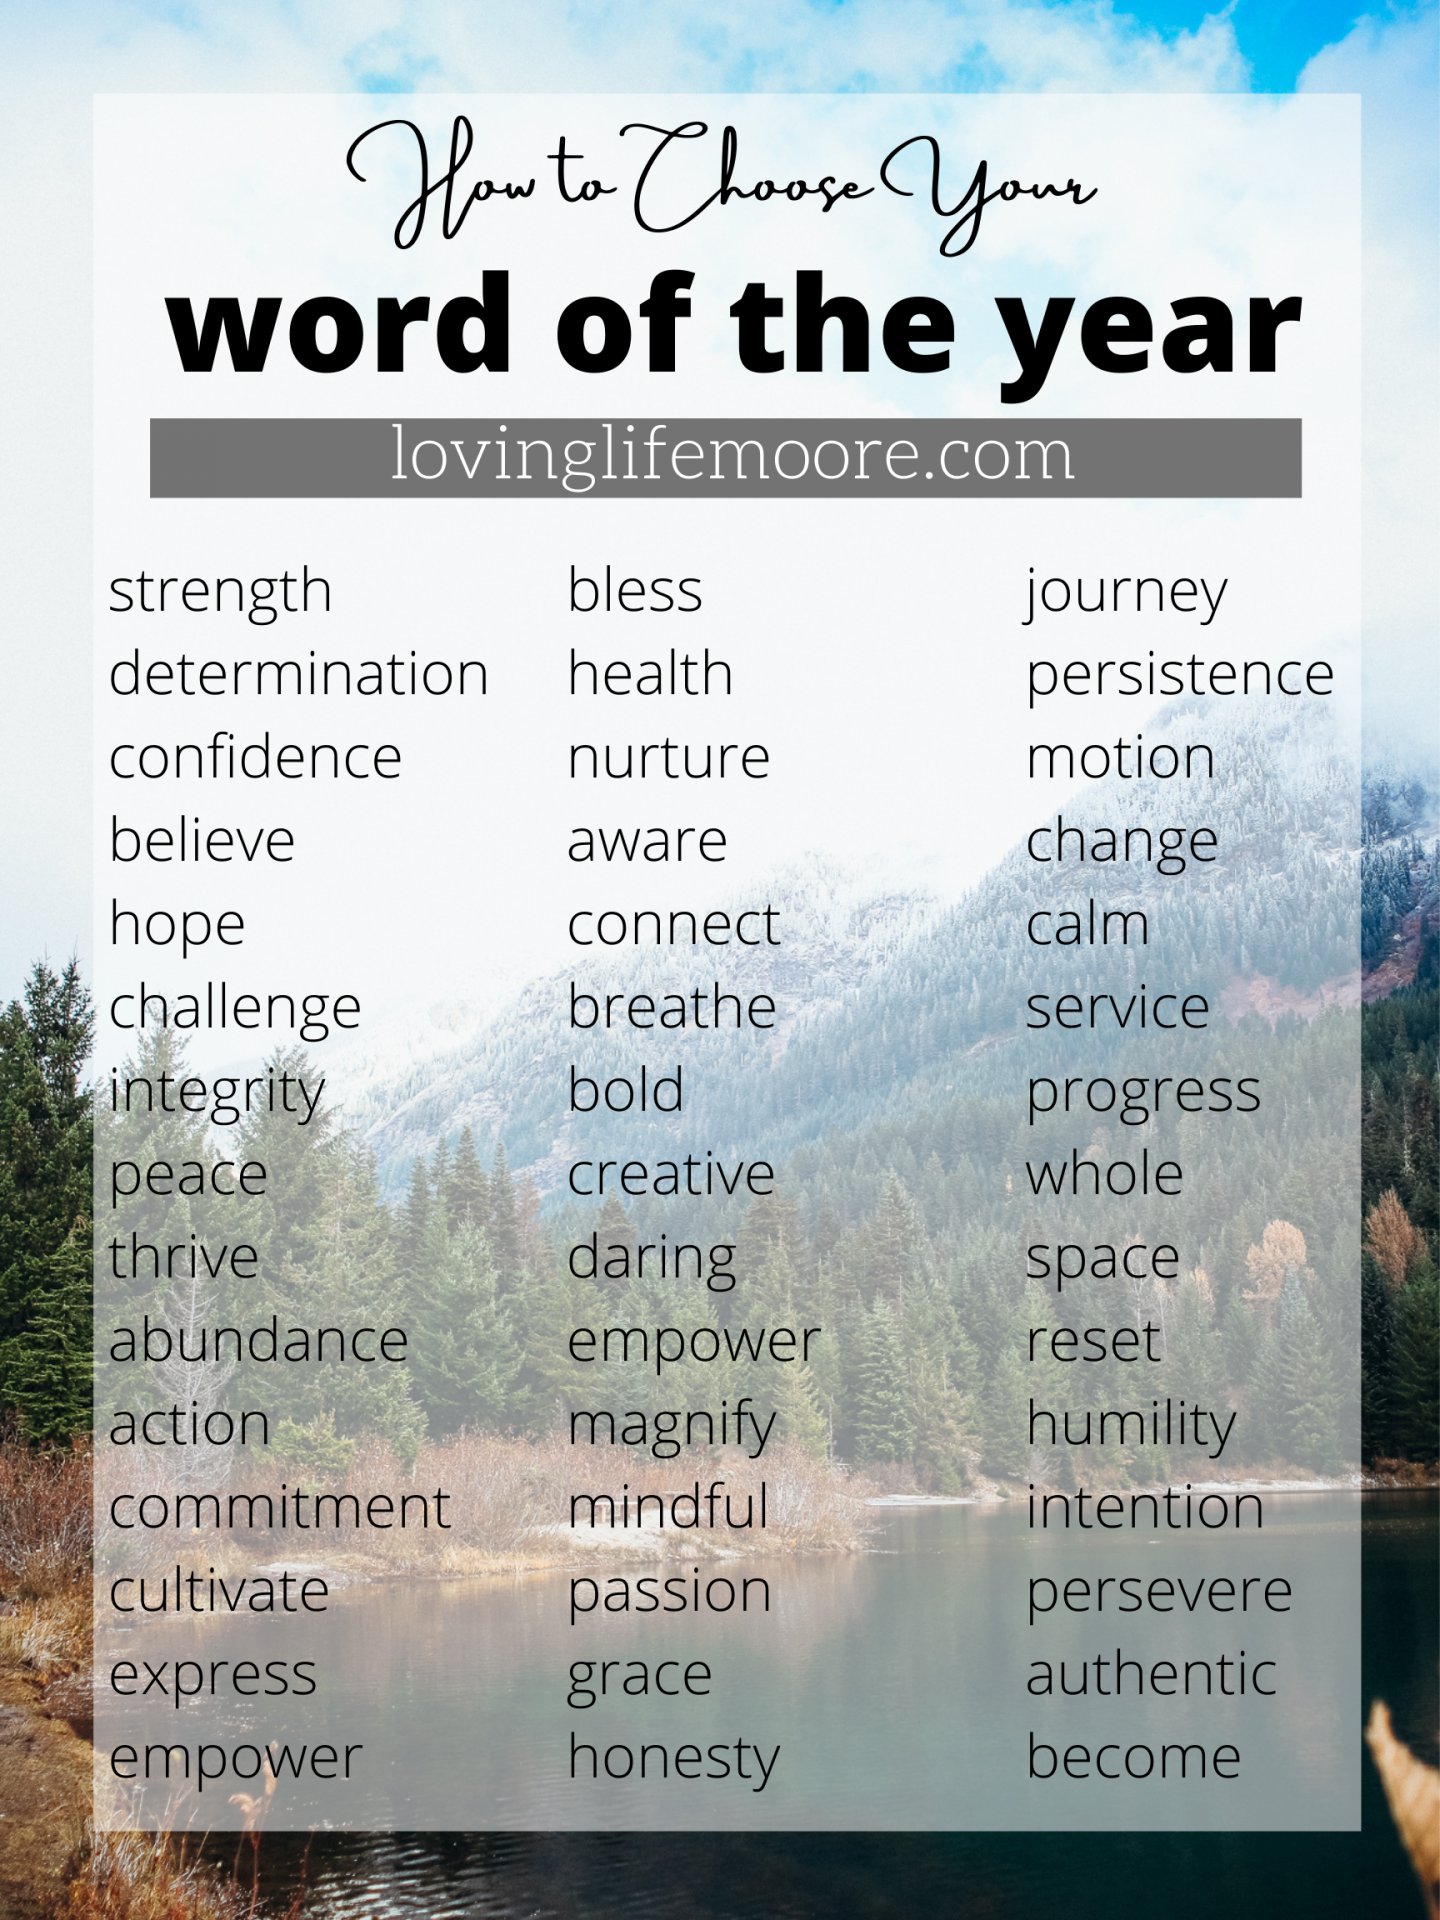 word of the year list